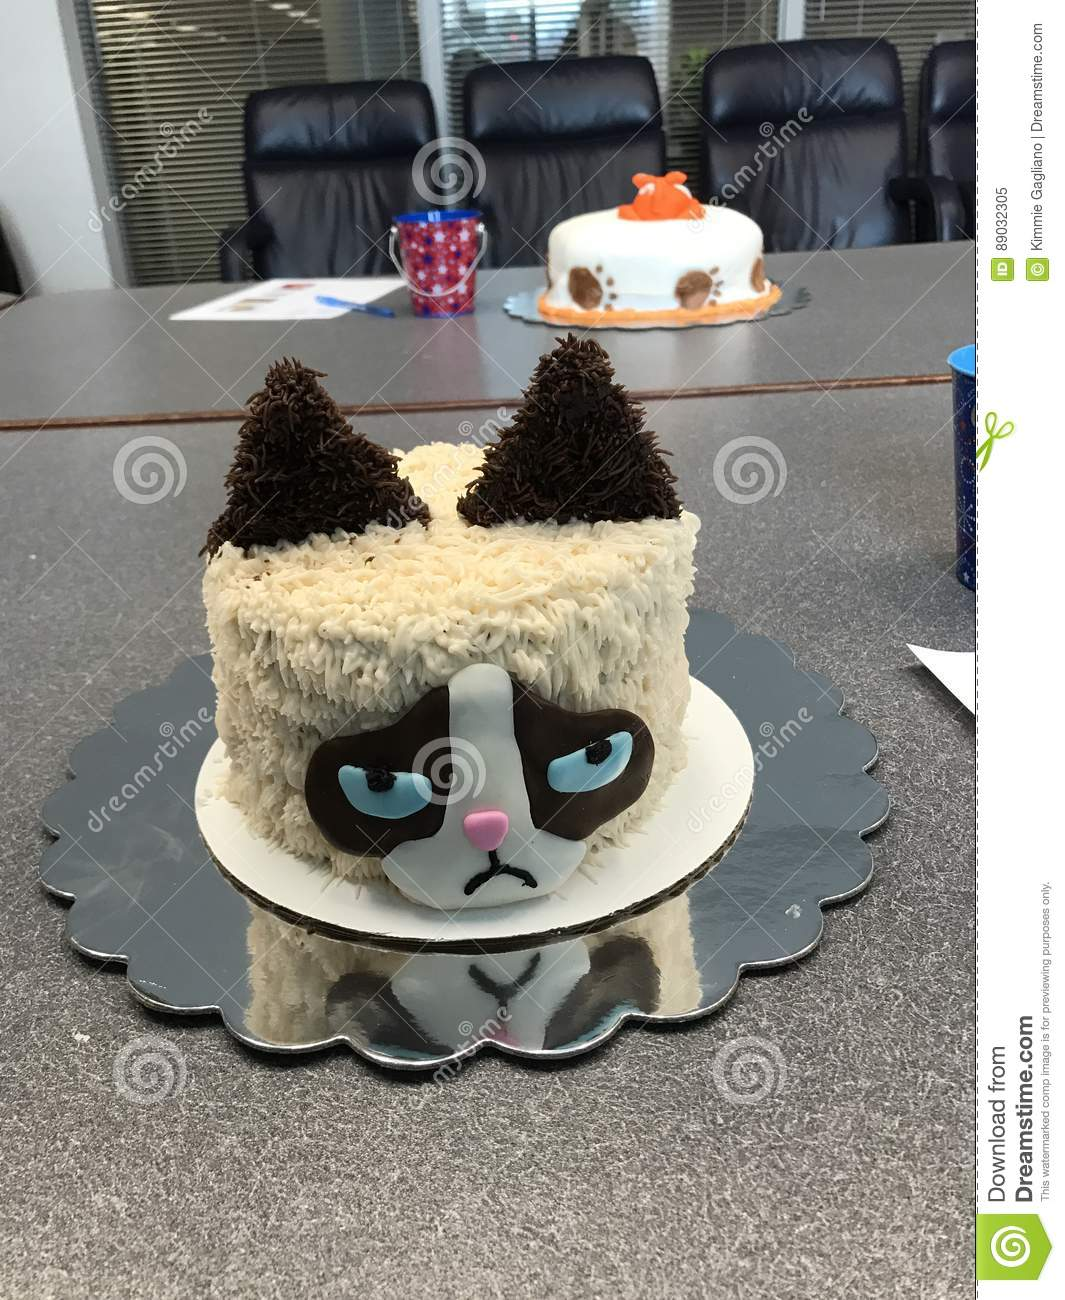 Tremendous Grumpy Cat Cake Editorial Image Image Of Grumpy Food 89032305 Funny Birthday Cards Online Inifofree Goldxyz